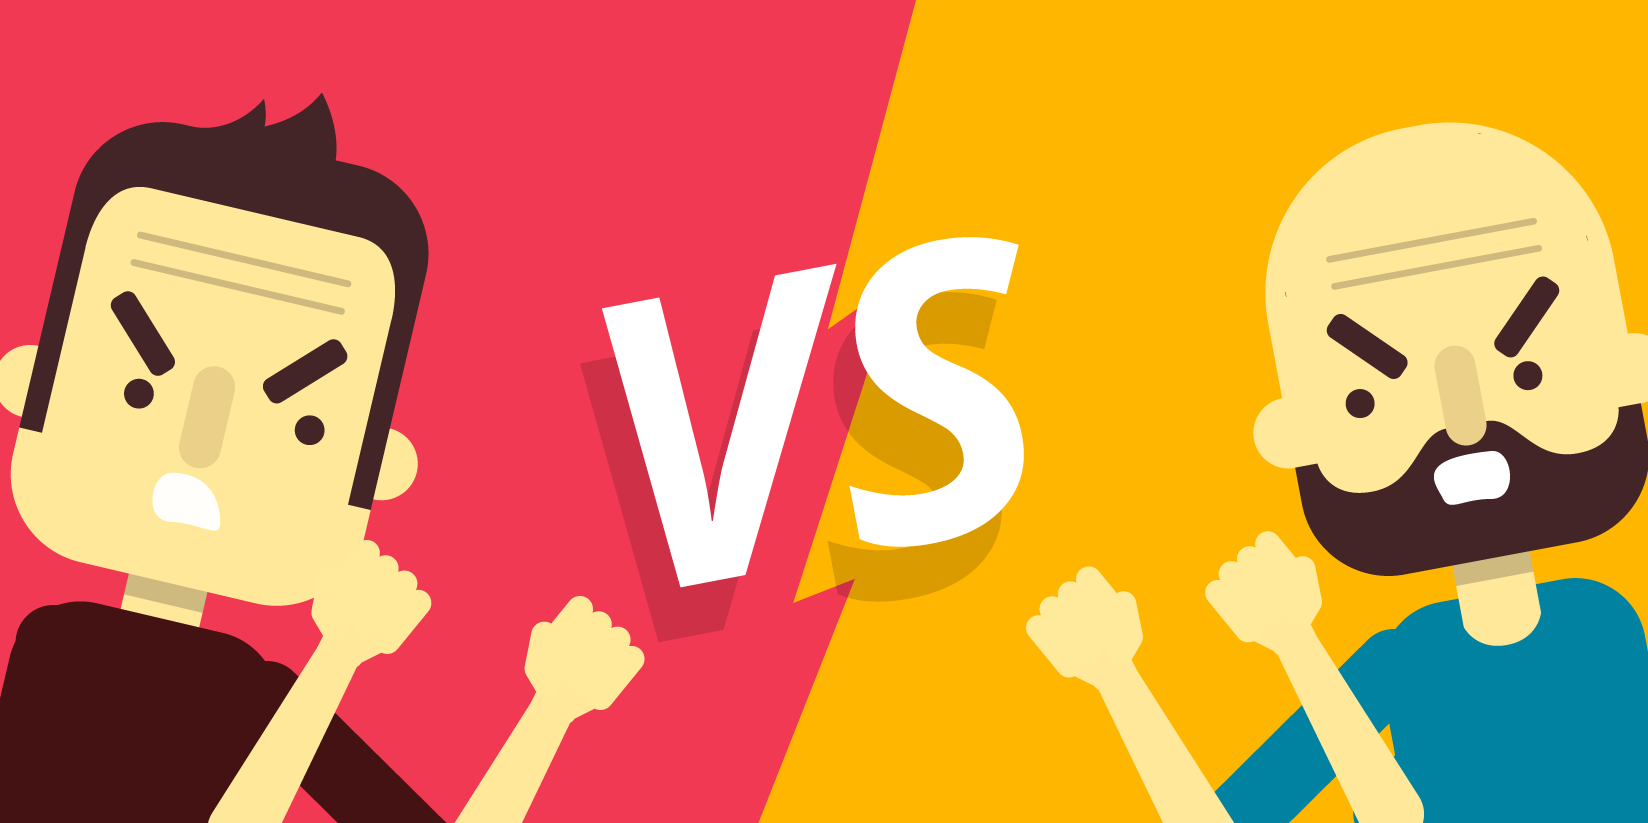 Designer vs Developer: Who's right?